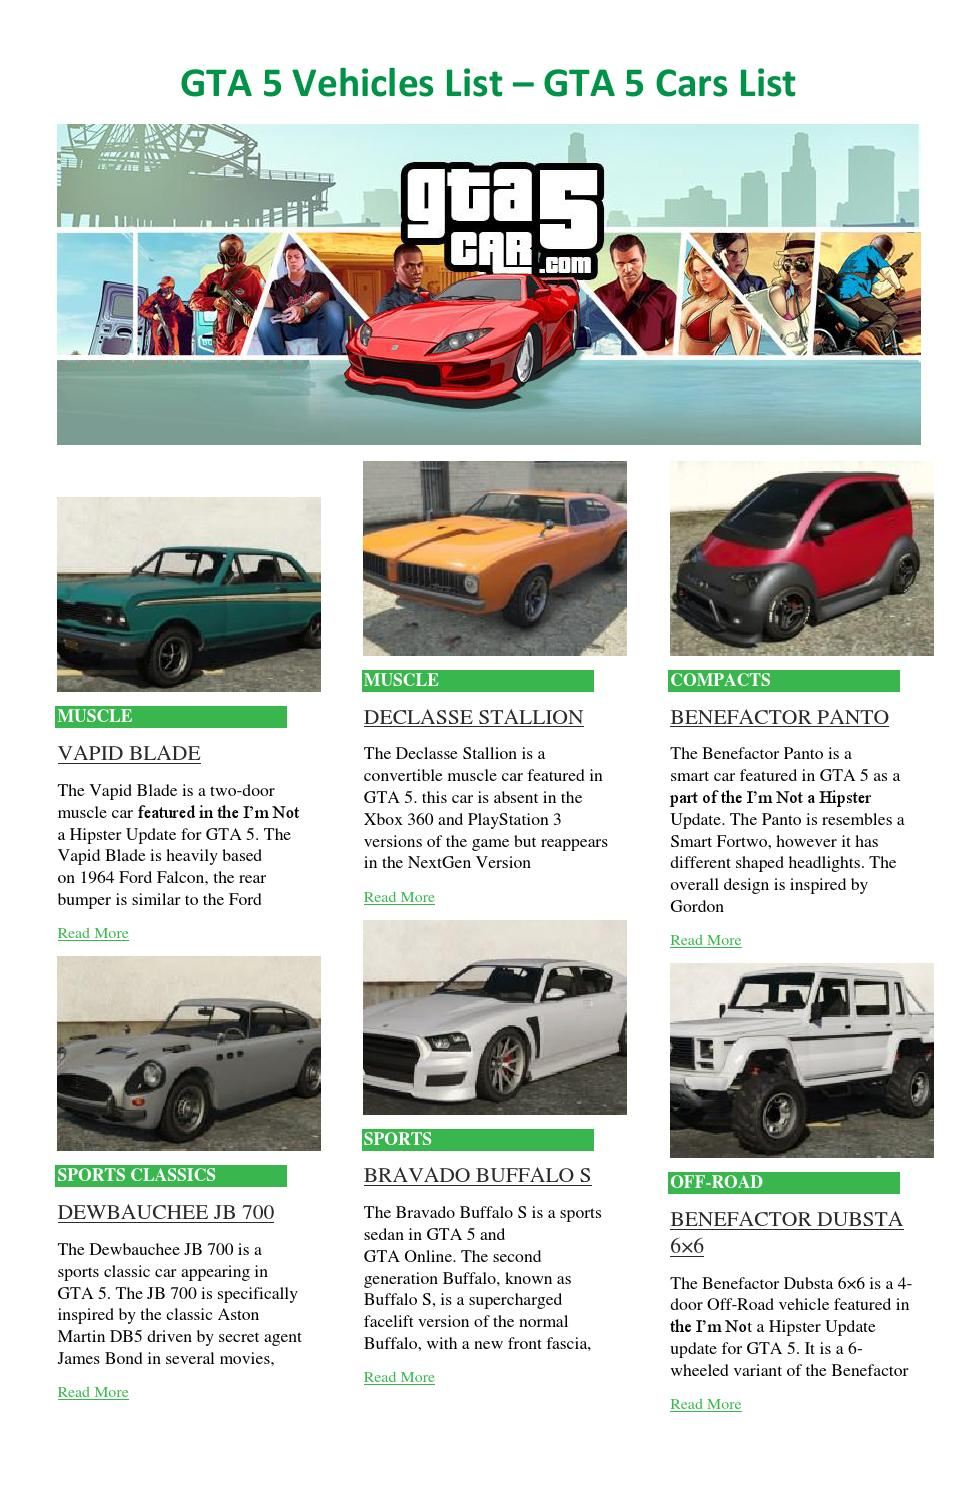 GTA 5 Cars List by GTA 5 Cars - issuu